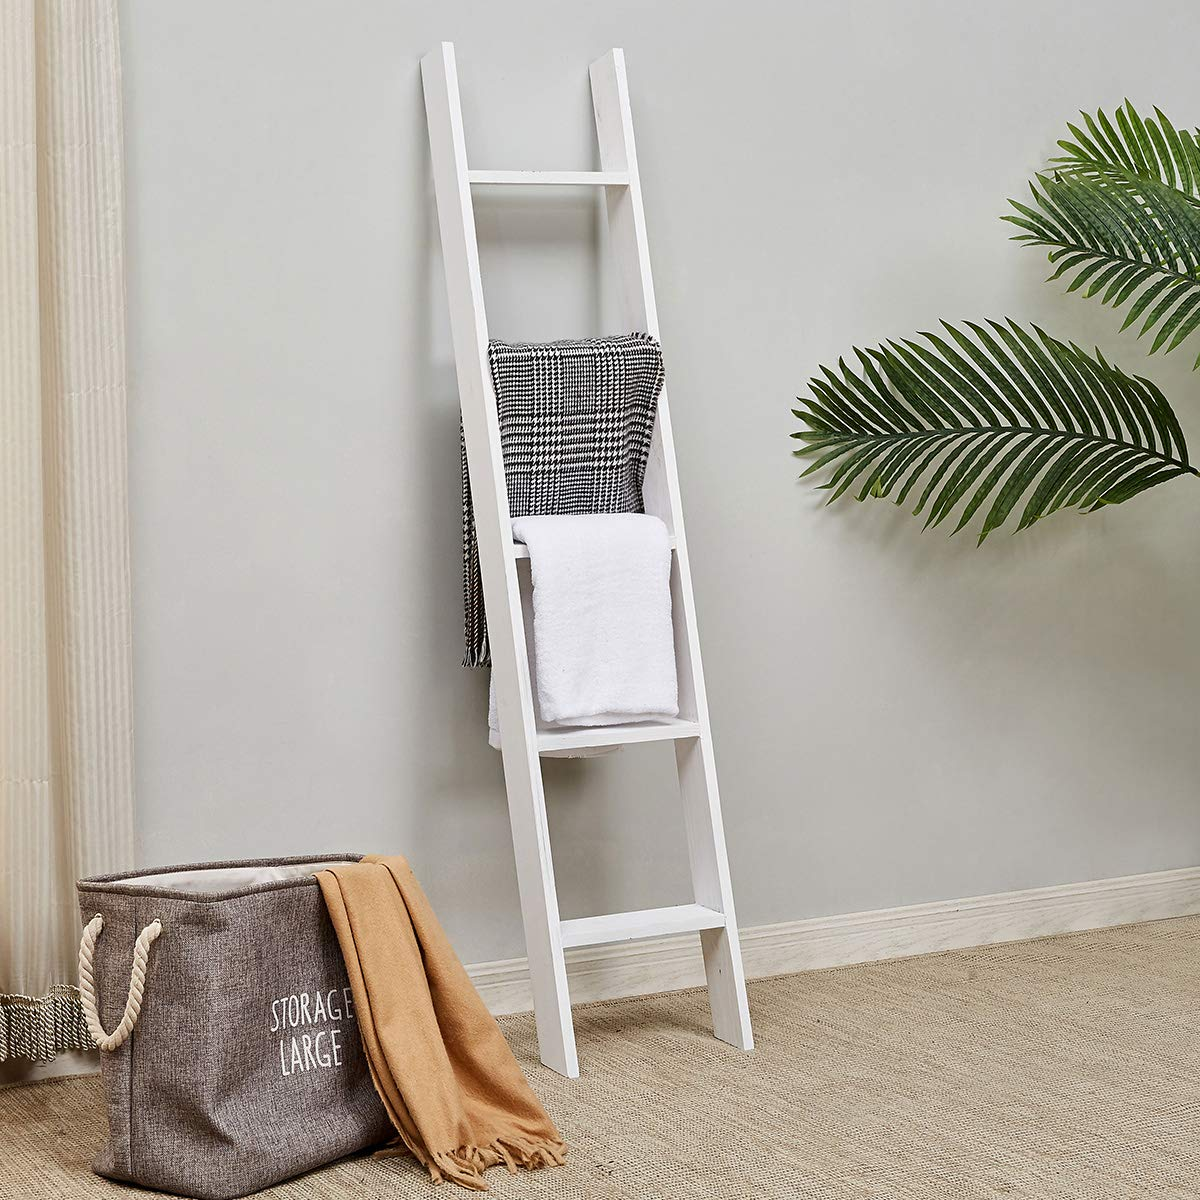 RHF Rustic Farmhouse Blanket Ladders,Wall Leaning Decorative Blanket Ladder,Rustic Wood 5ft Blanket Ladders, Blanket Quilt Rack Stand for Living Room, Ladder Decor,No Assembly Required 5-Feet, White by Rose Home Fashion